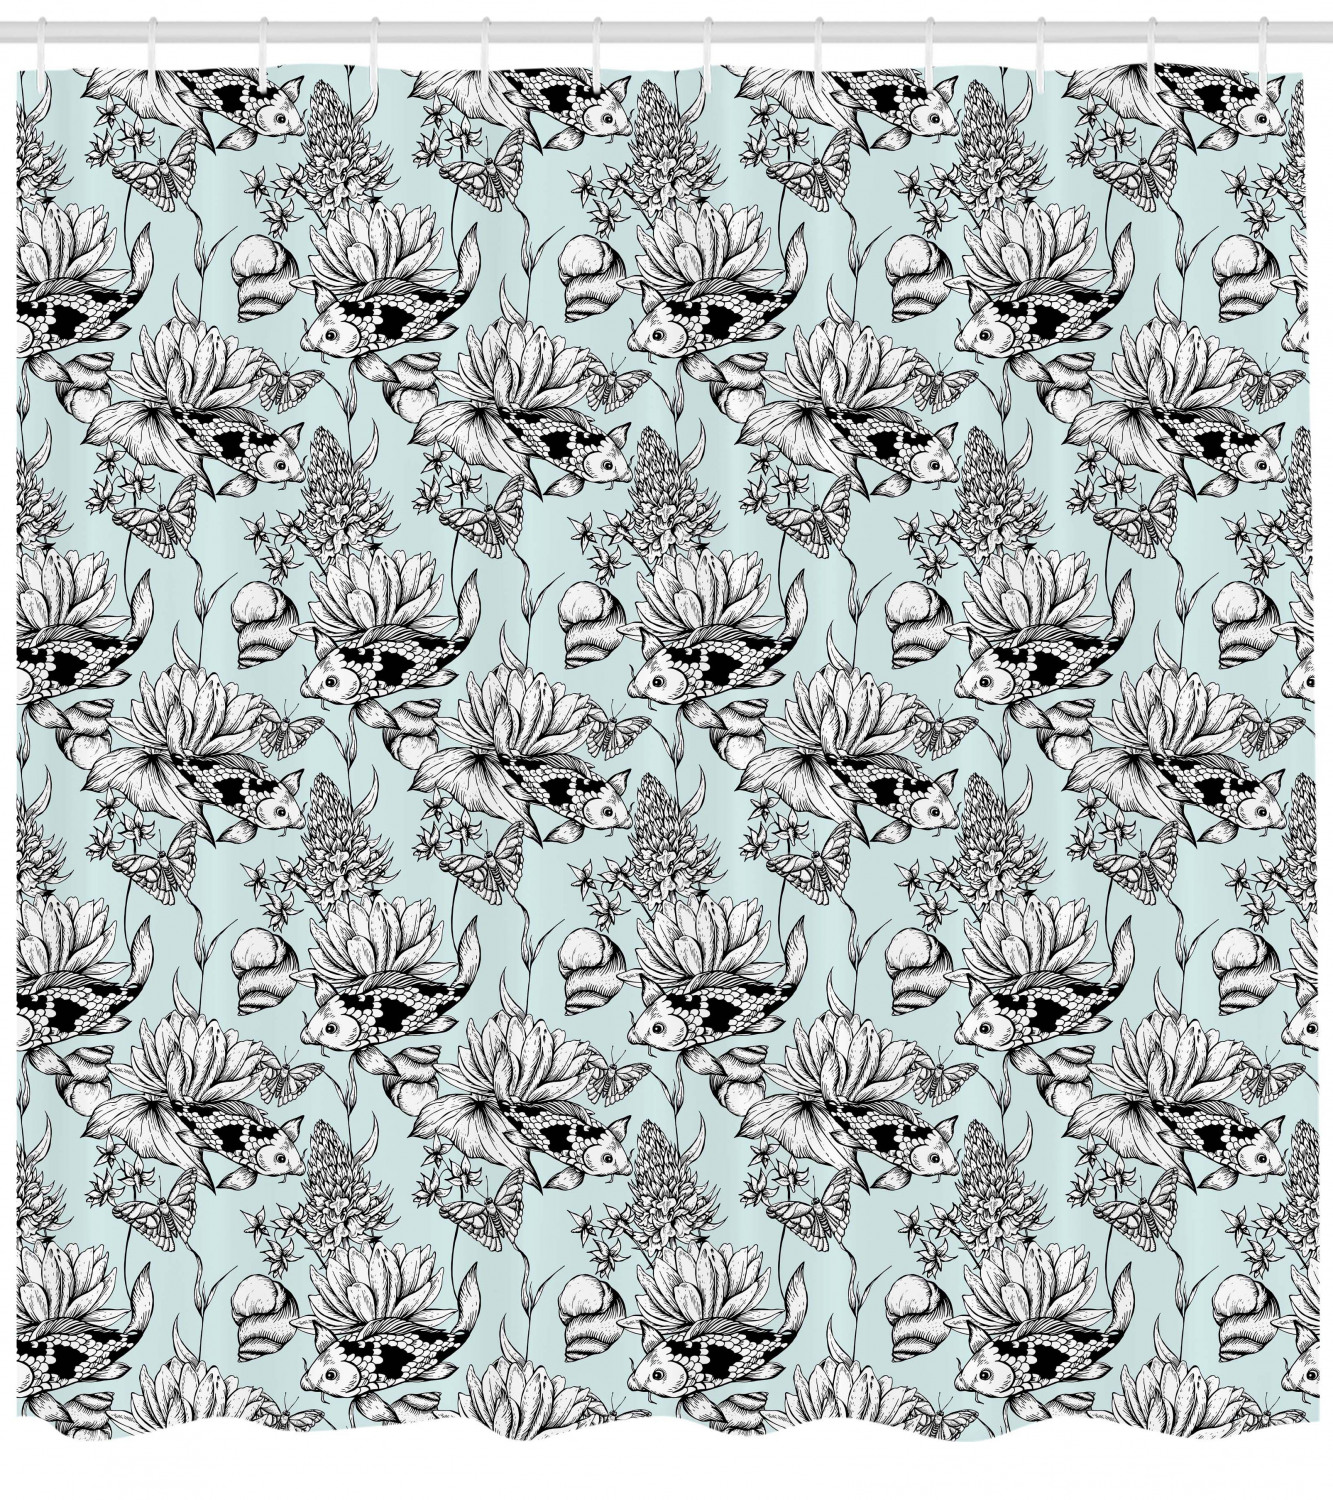 Shabby Chic Shower Curtain Vintage Monochrome Pond Water Flowers Lily Carp Snail Twigs Artwork Fabric Bathroom Set With Hooks Baby Blue Black